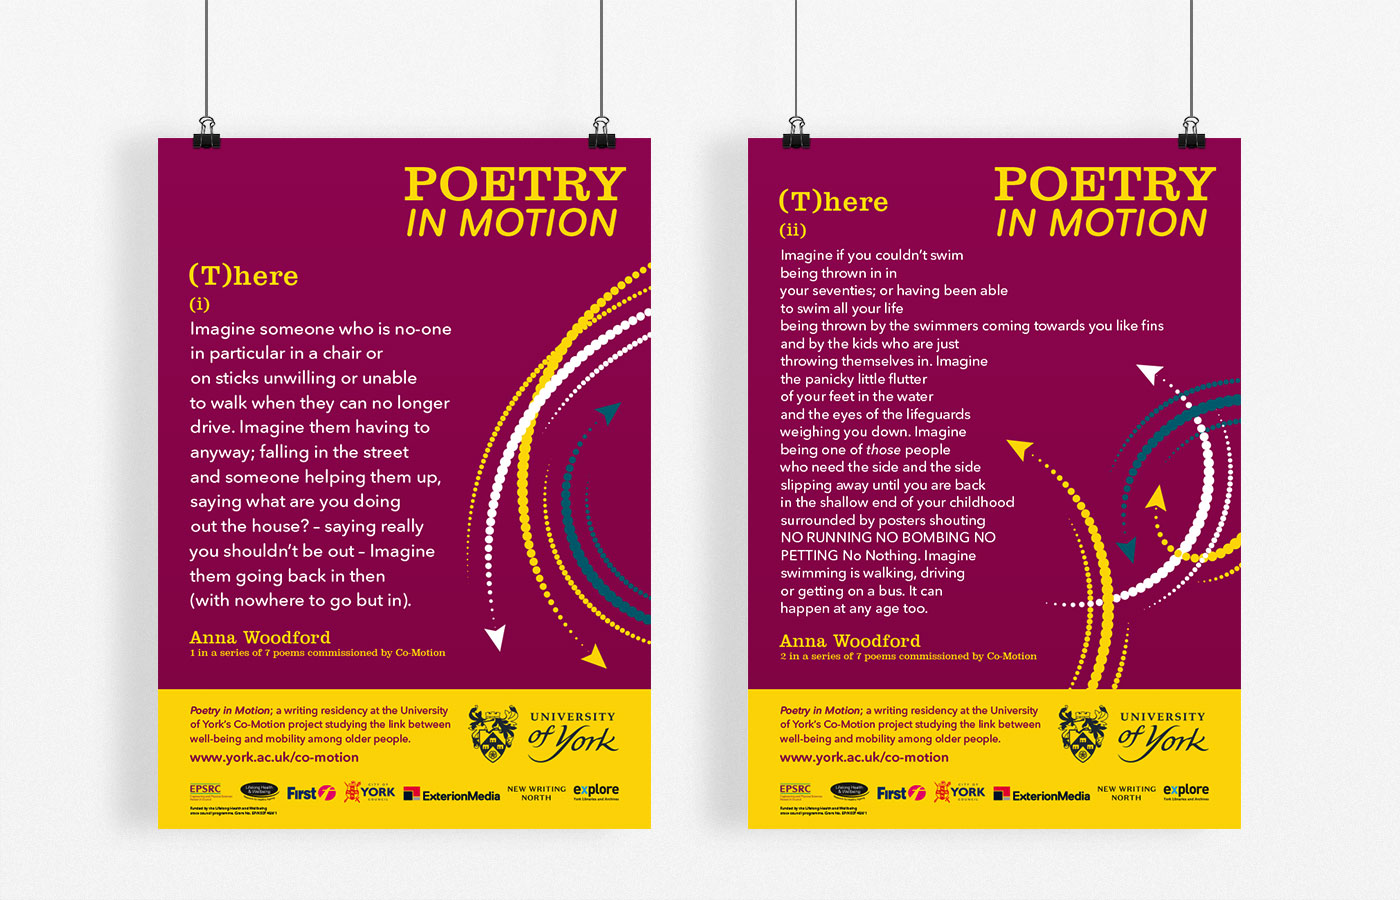 Poetry in Motion poster designs on display